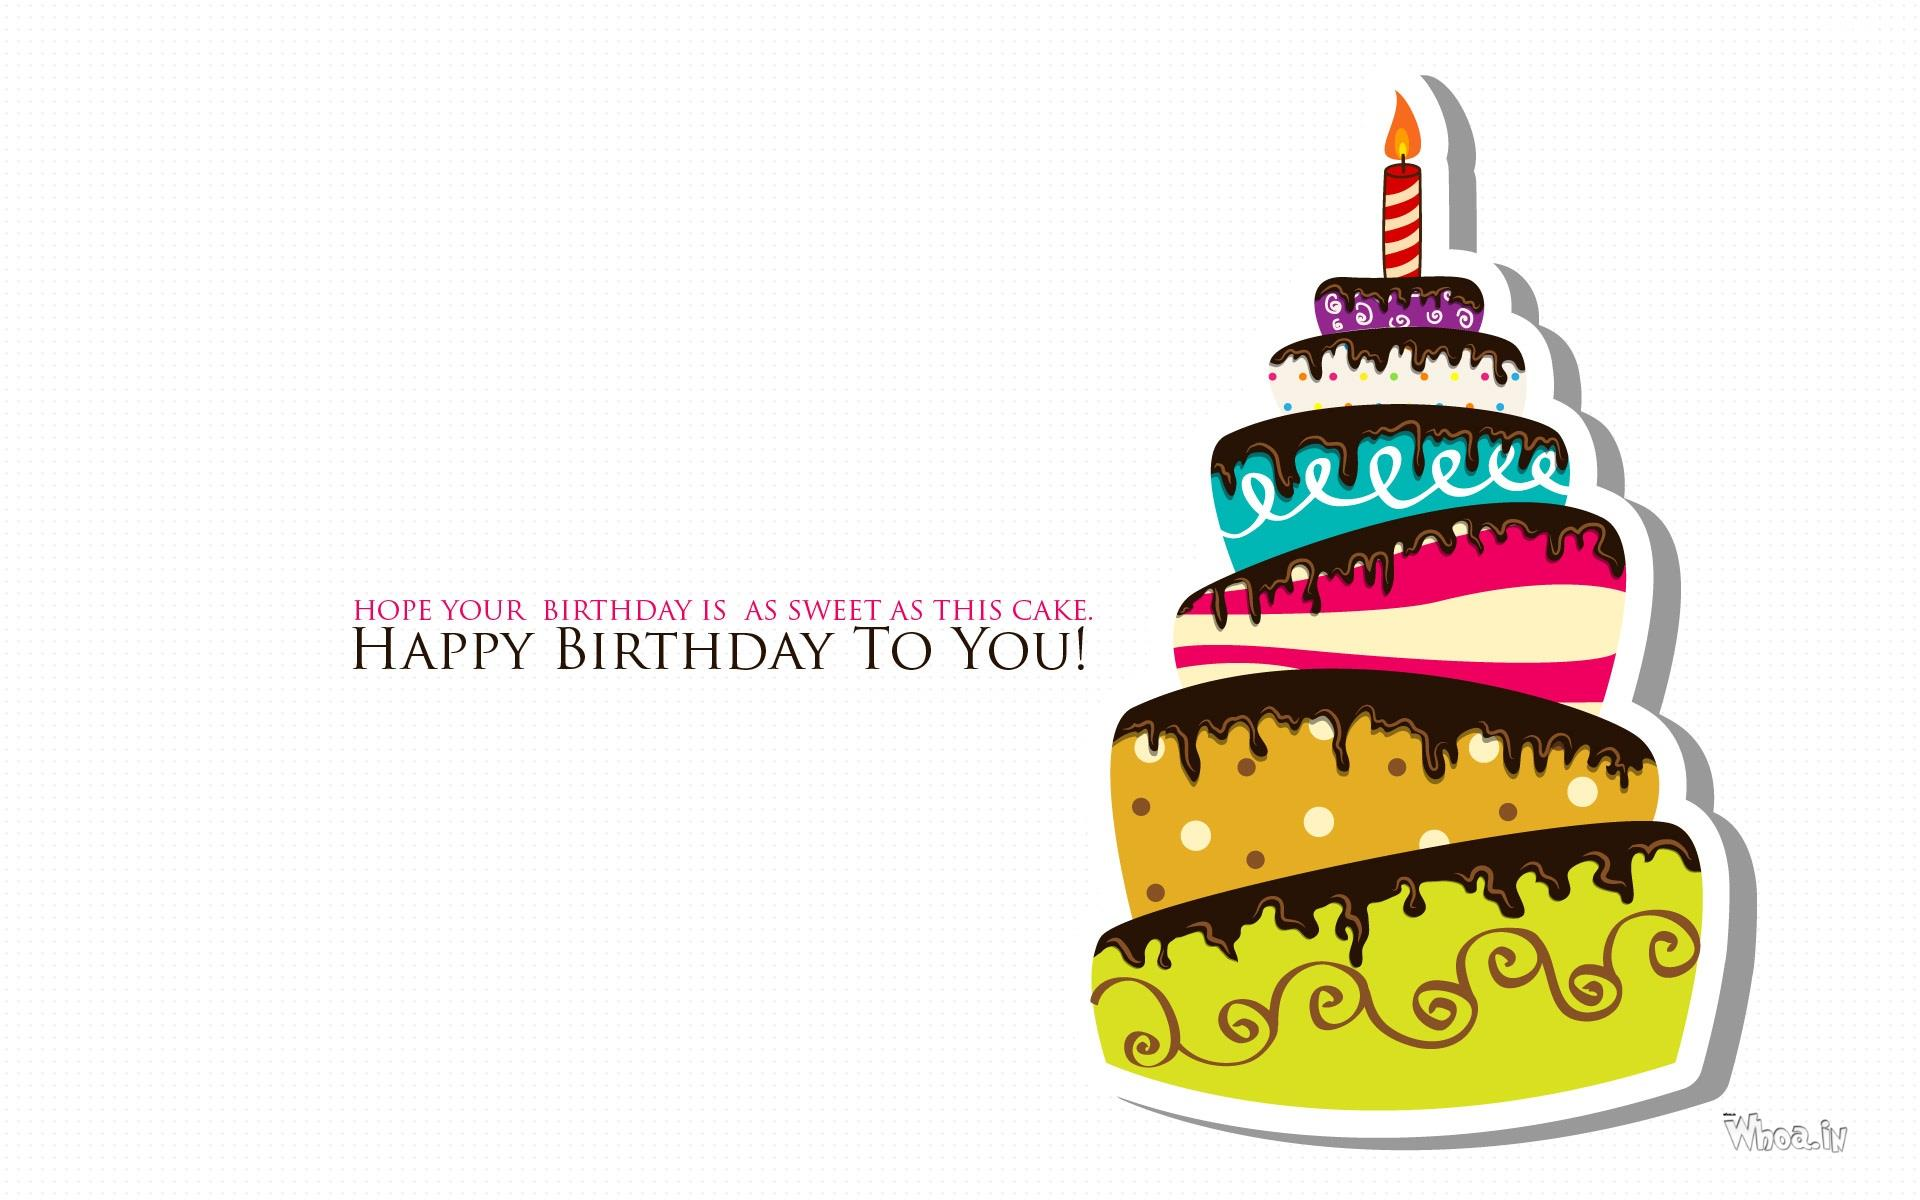 Hd wallpaper birthday -  Happy Birthday Multi Color Cake With Quote Hd Wallpaper